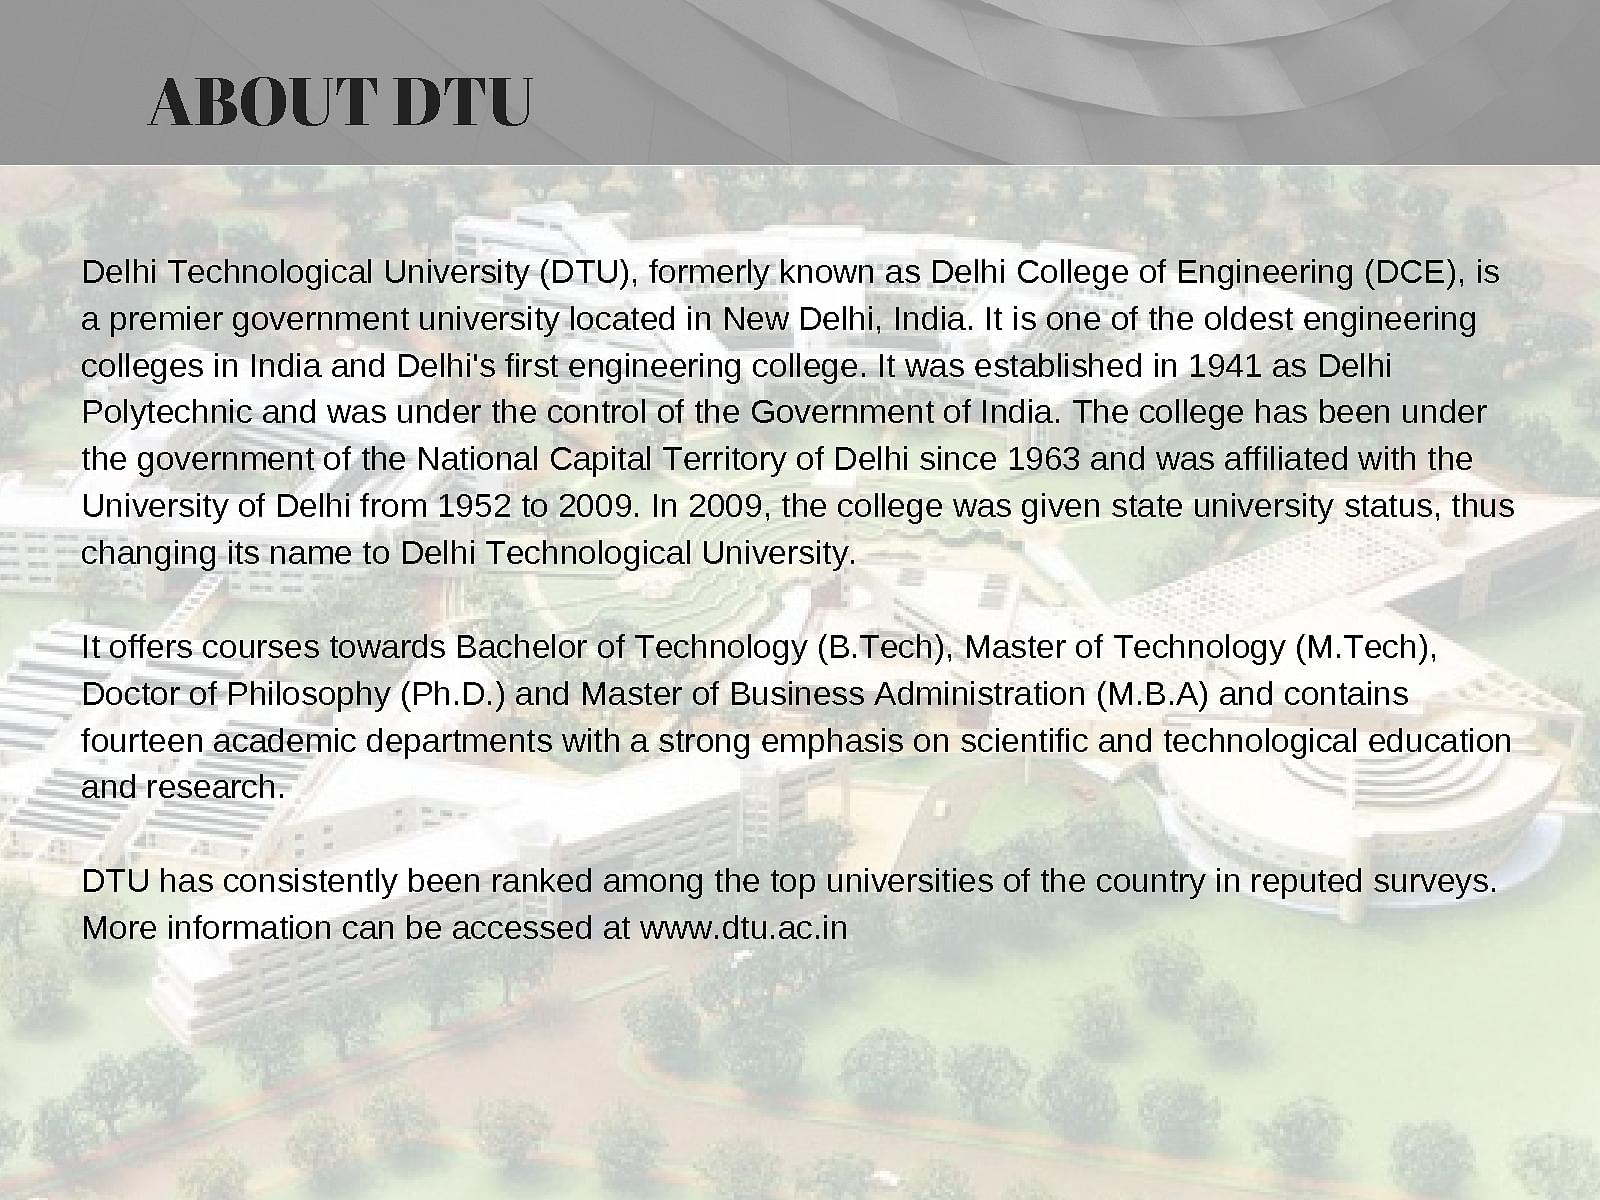 free dating sites in delhi technological university Find researchers and browse departments, publications, full-texts, contact details and general information related to delhi technological university.